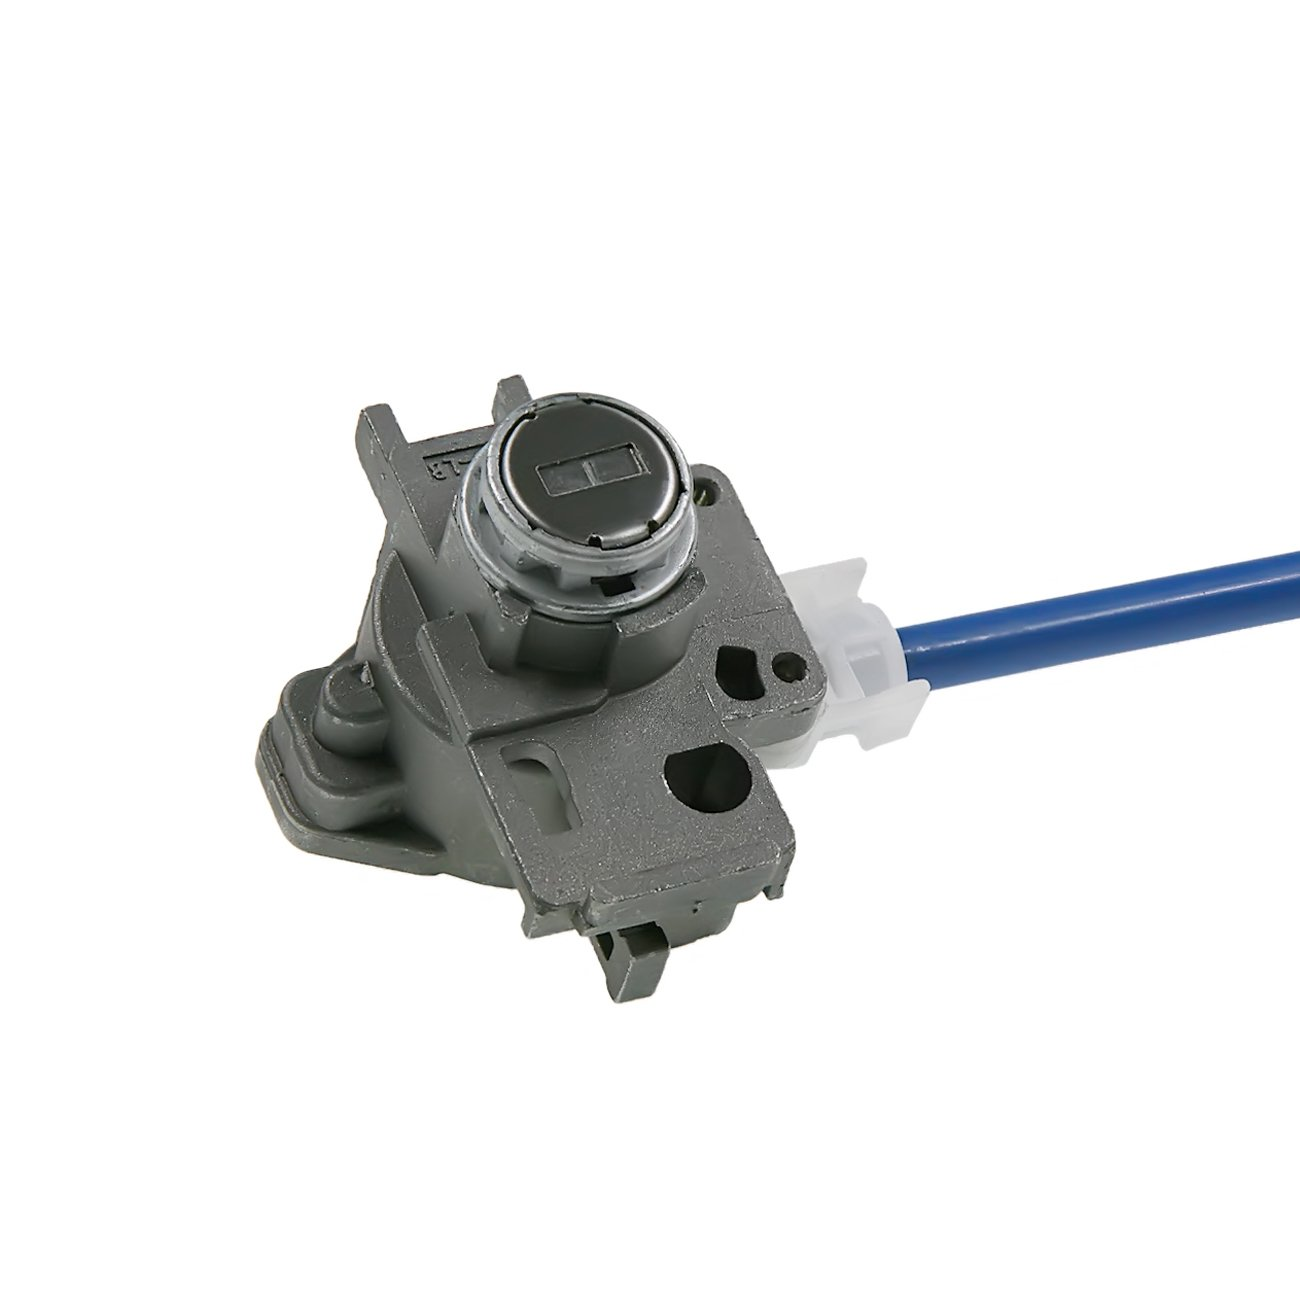 JRL Left Driver Door Lock Cylinder Cable 72185-TA0-A01 For Accord 2008-2012 New